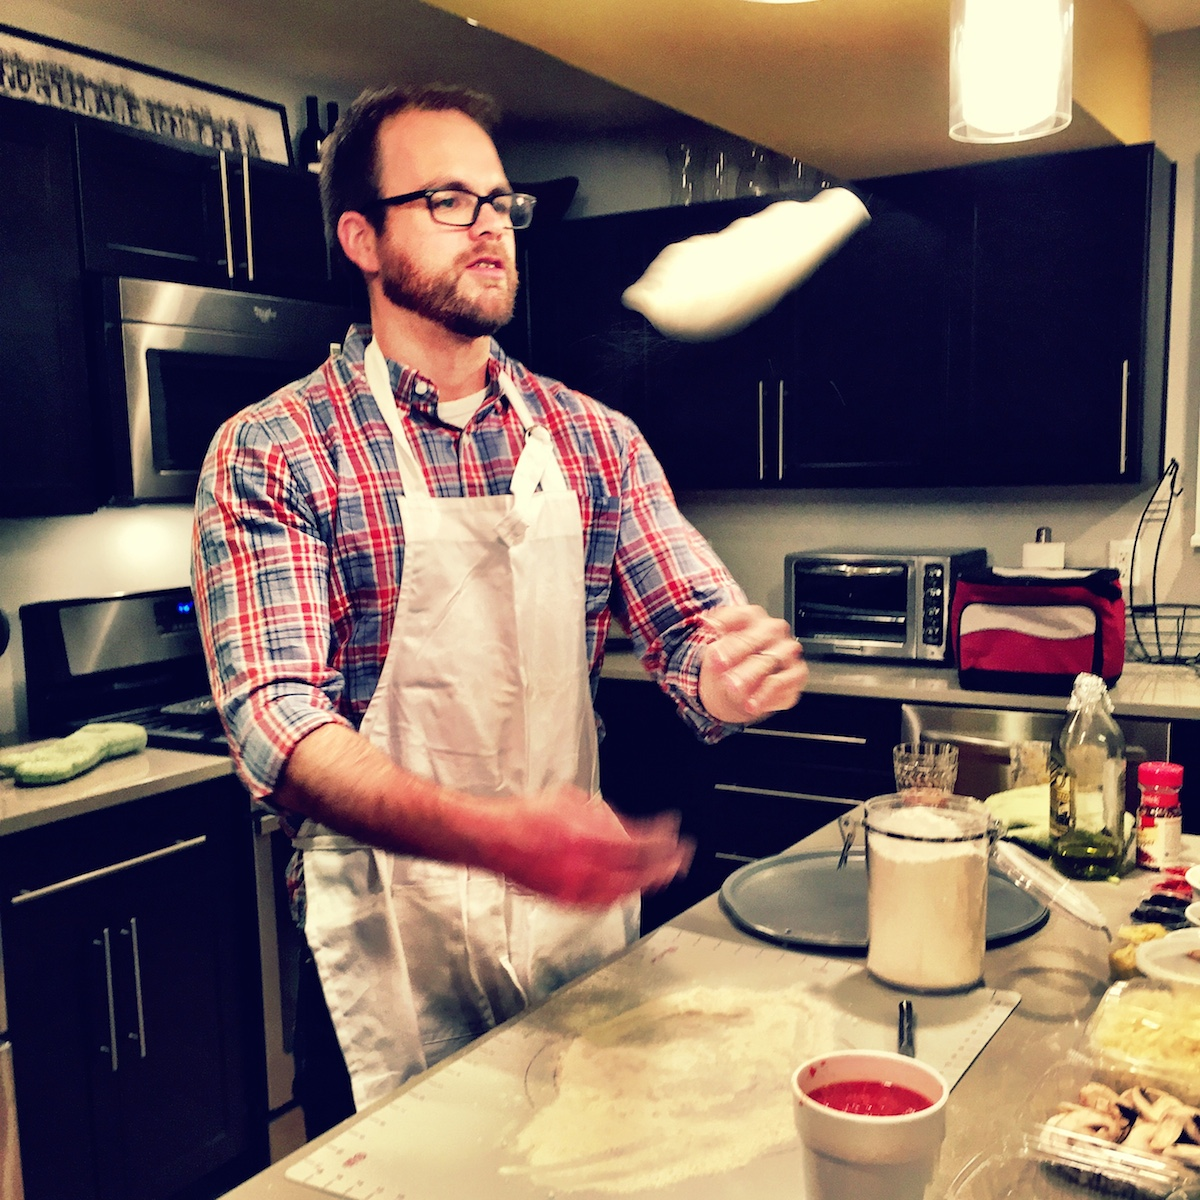 While spinning pizza dough in the kitchen, the yellow beam keeps me from throwing the dough to high.